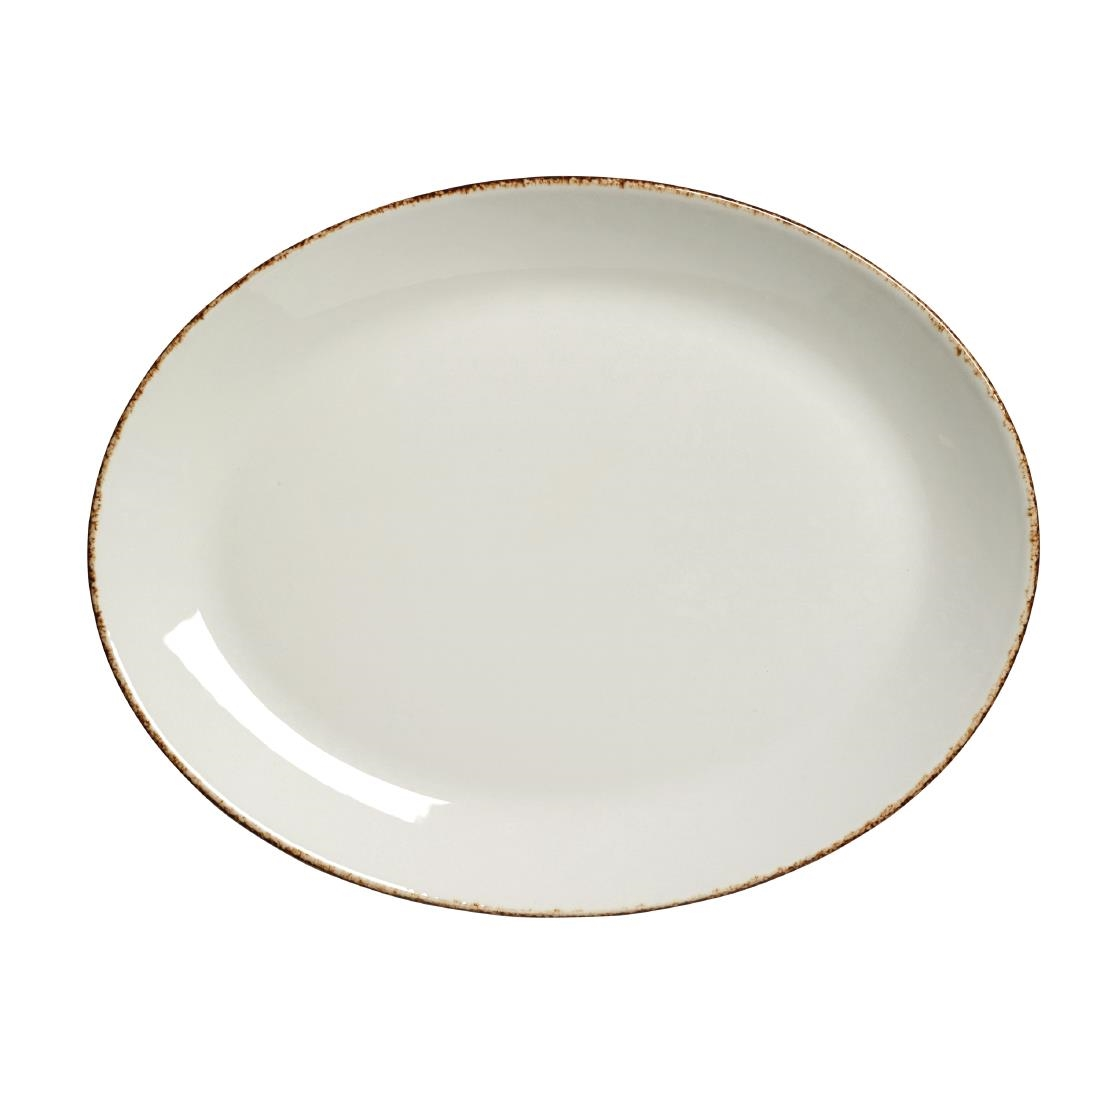 Steelite Brown Dapple Oval Coupe Plates 305mm Pack of 12